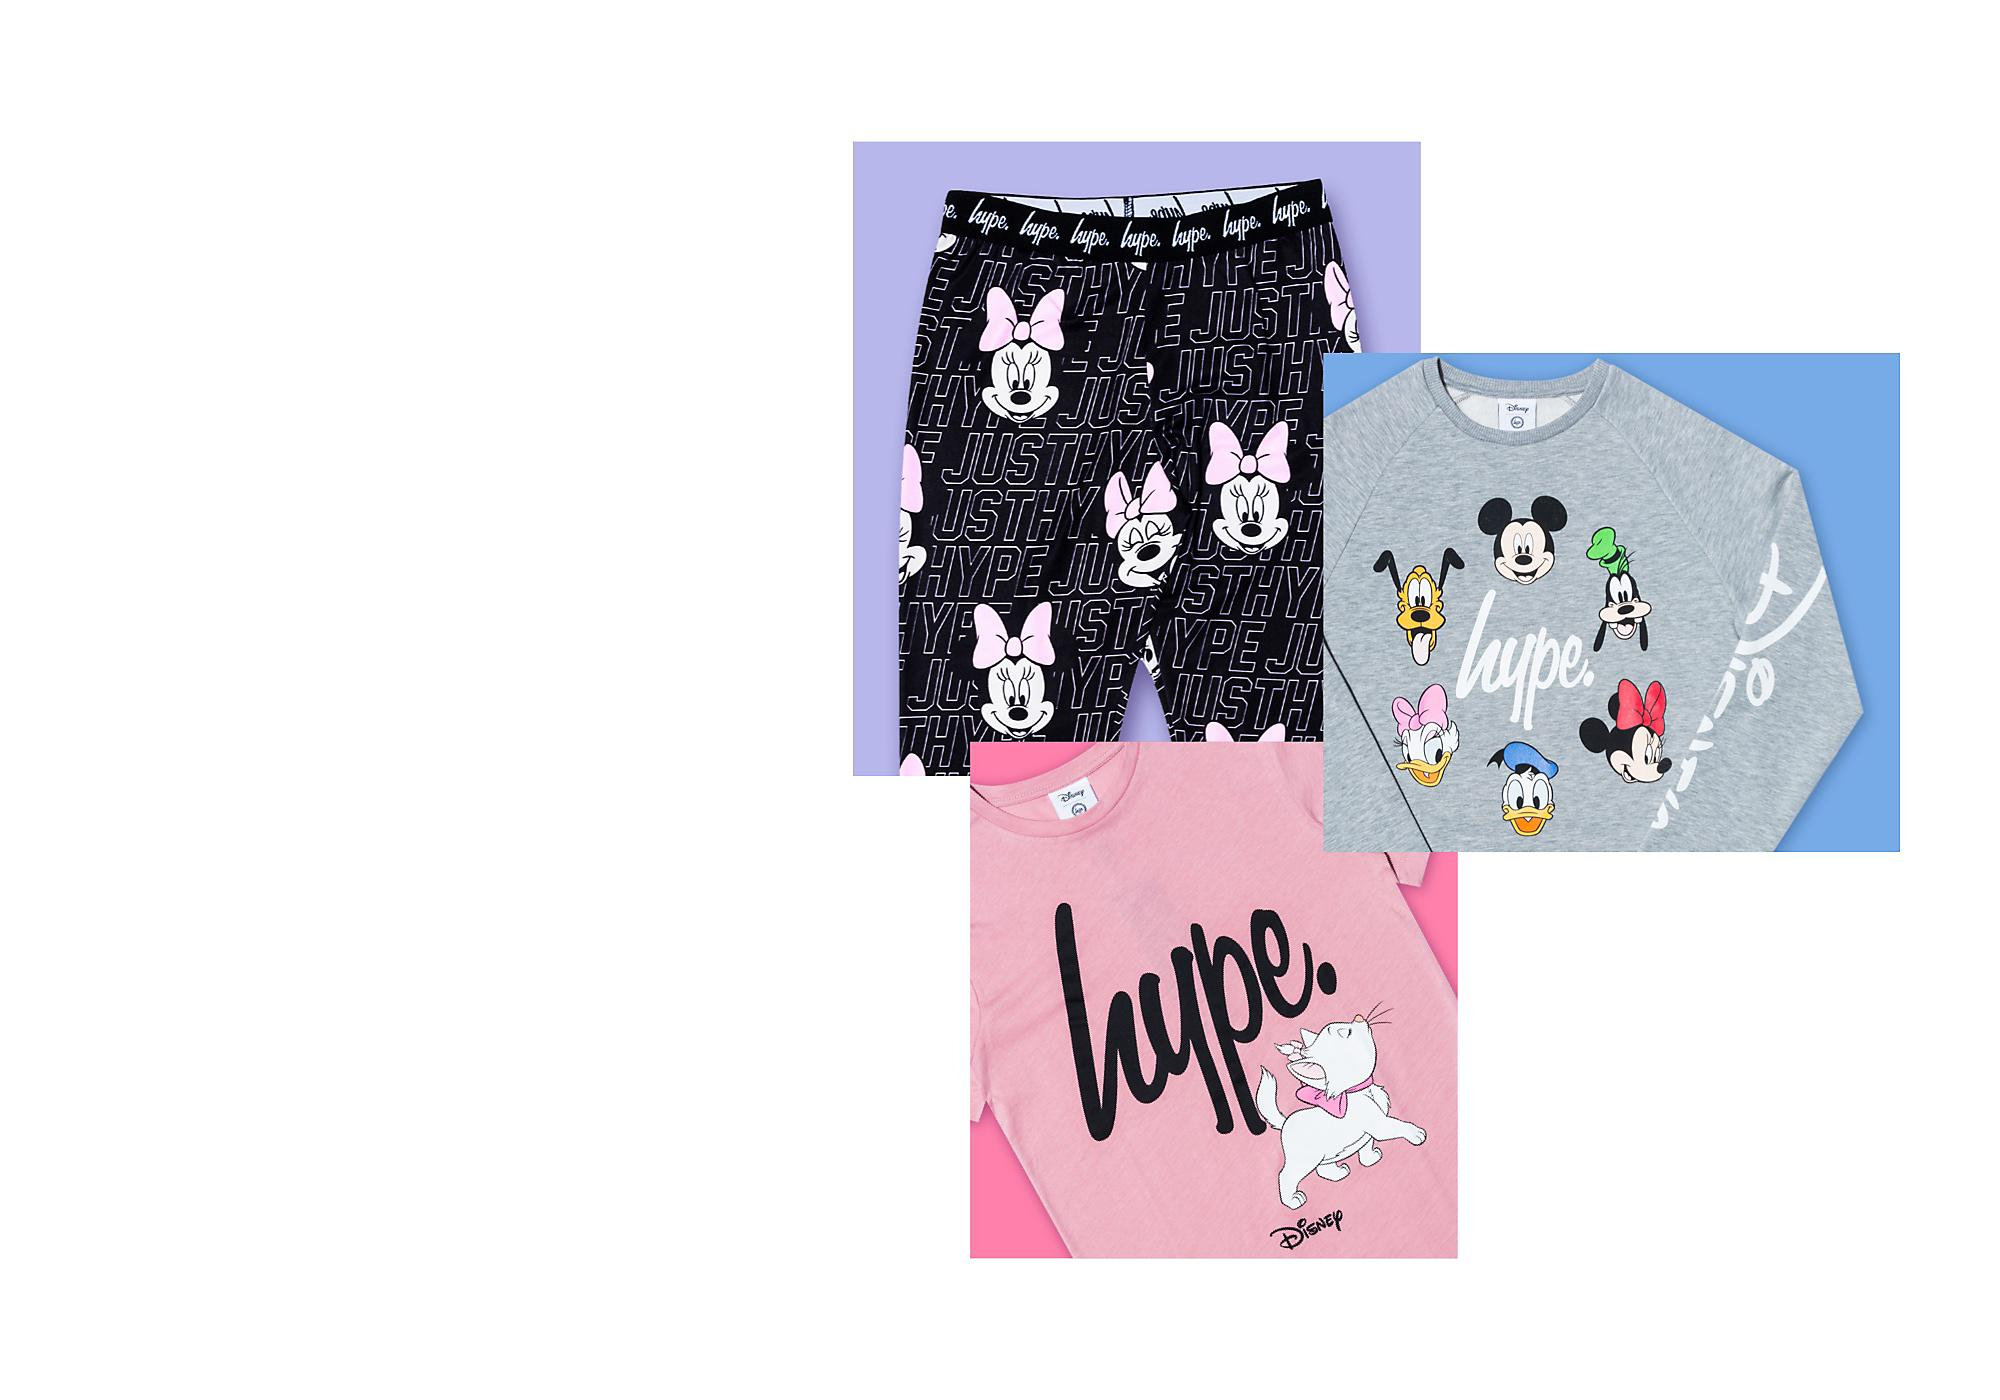 Stylish Accessories One of the UK's most recognisable brands joins forces with Disney for an exclusive collaboration of stylish accessories.